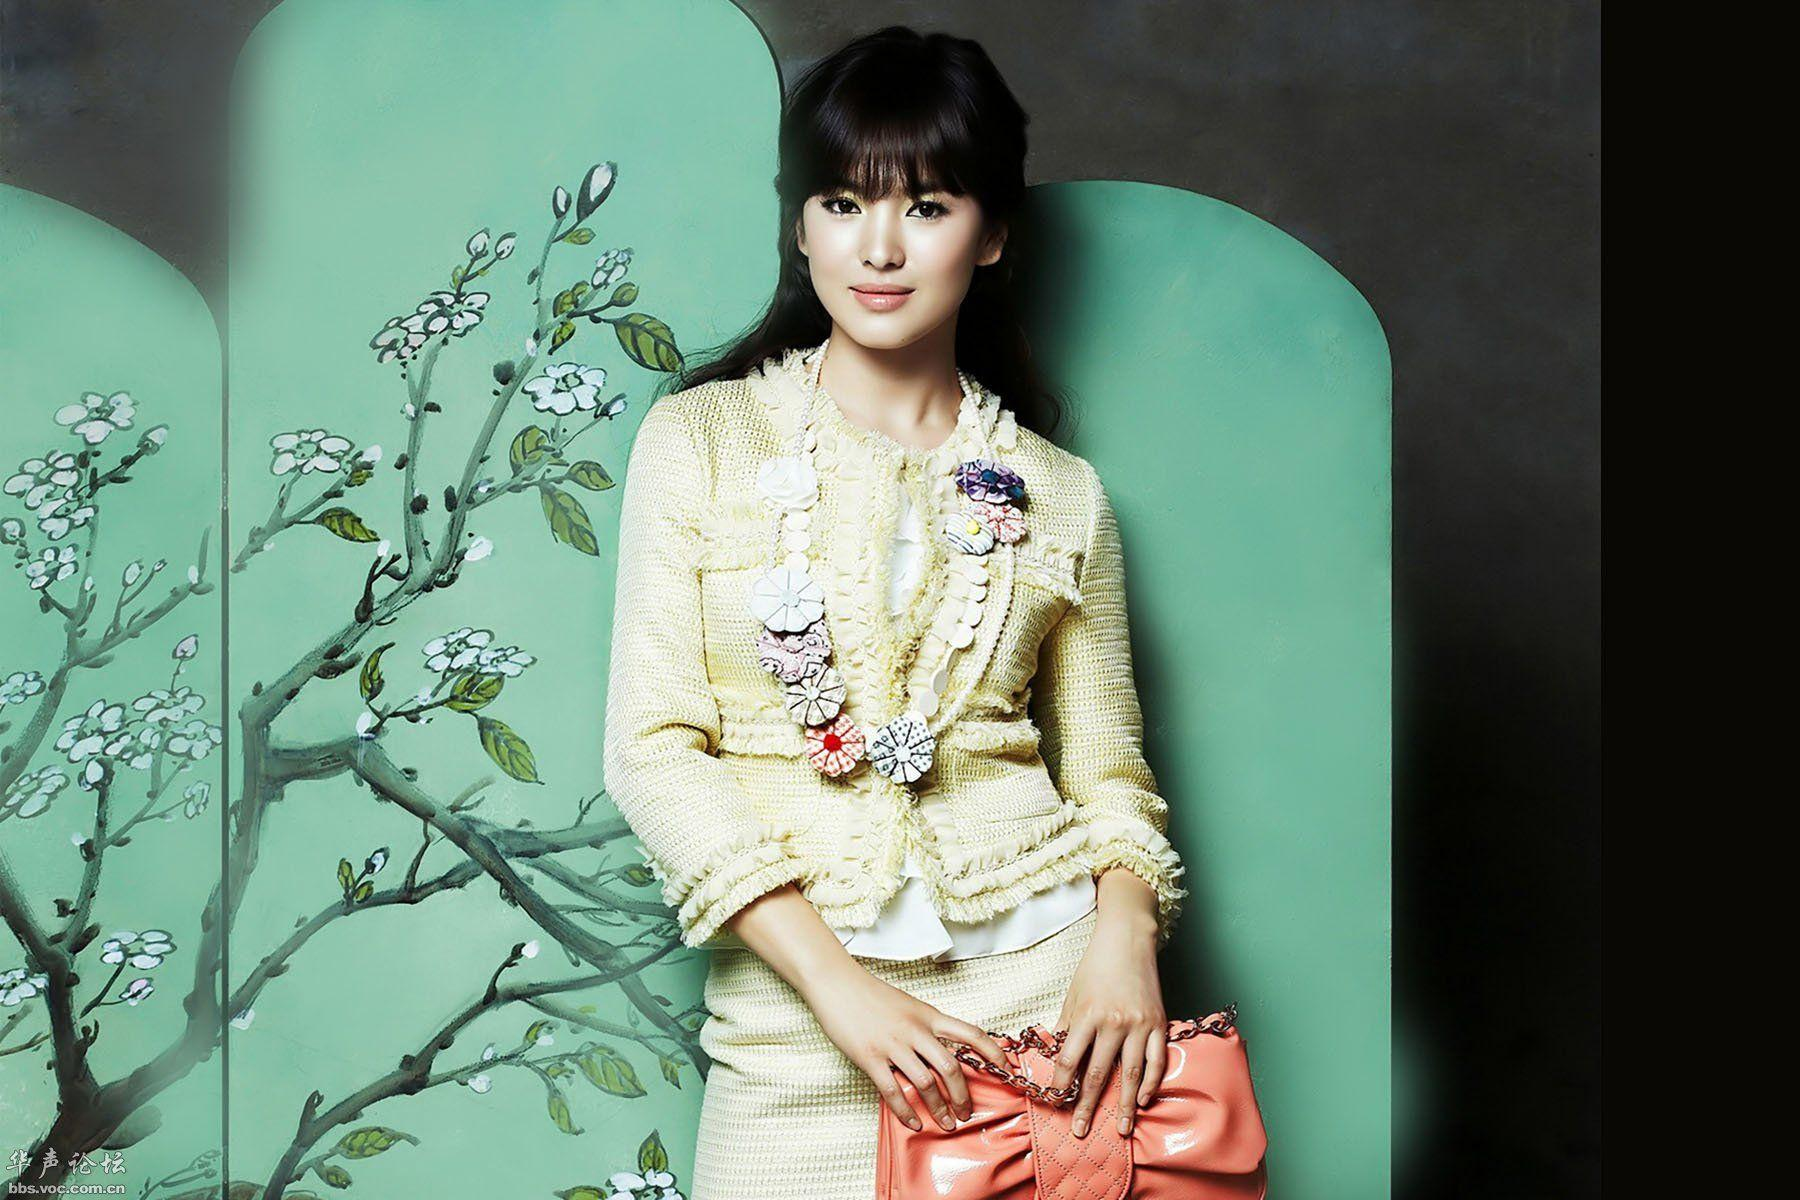 Song Hye-kyo 2018 Wallpapers - Wallpaper Cave